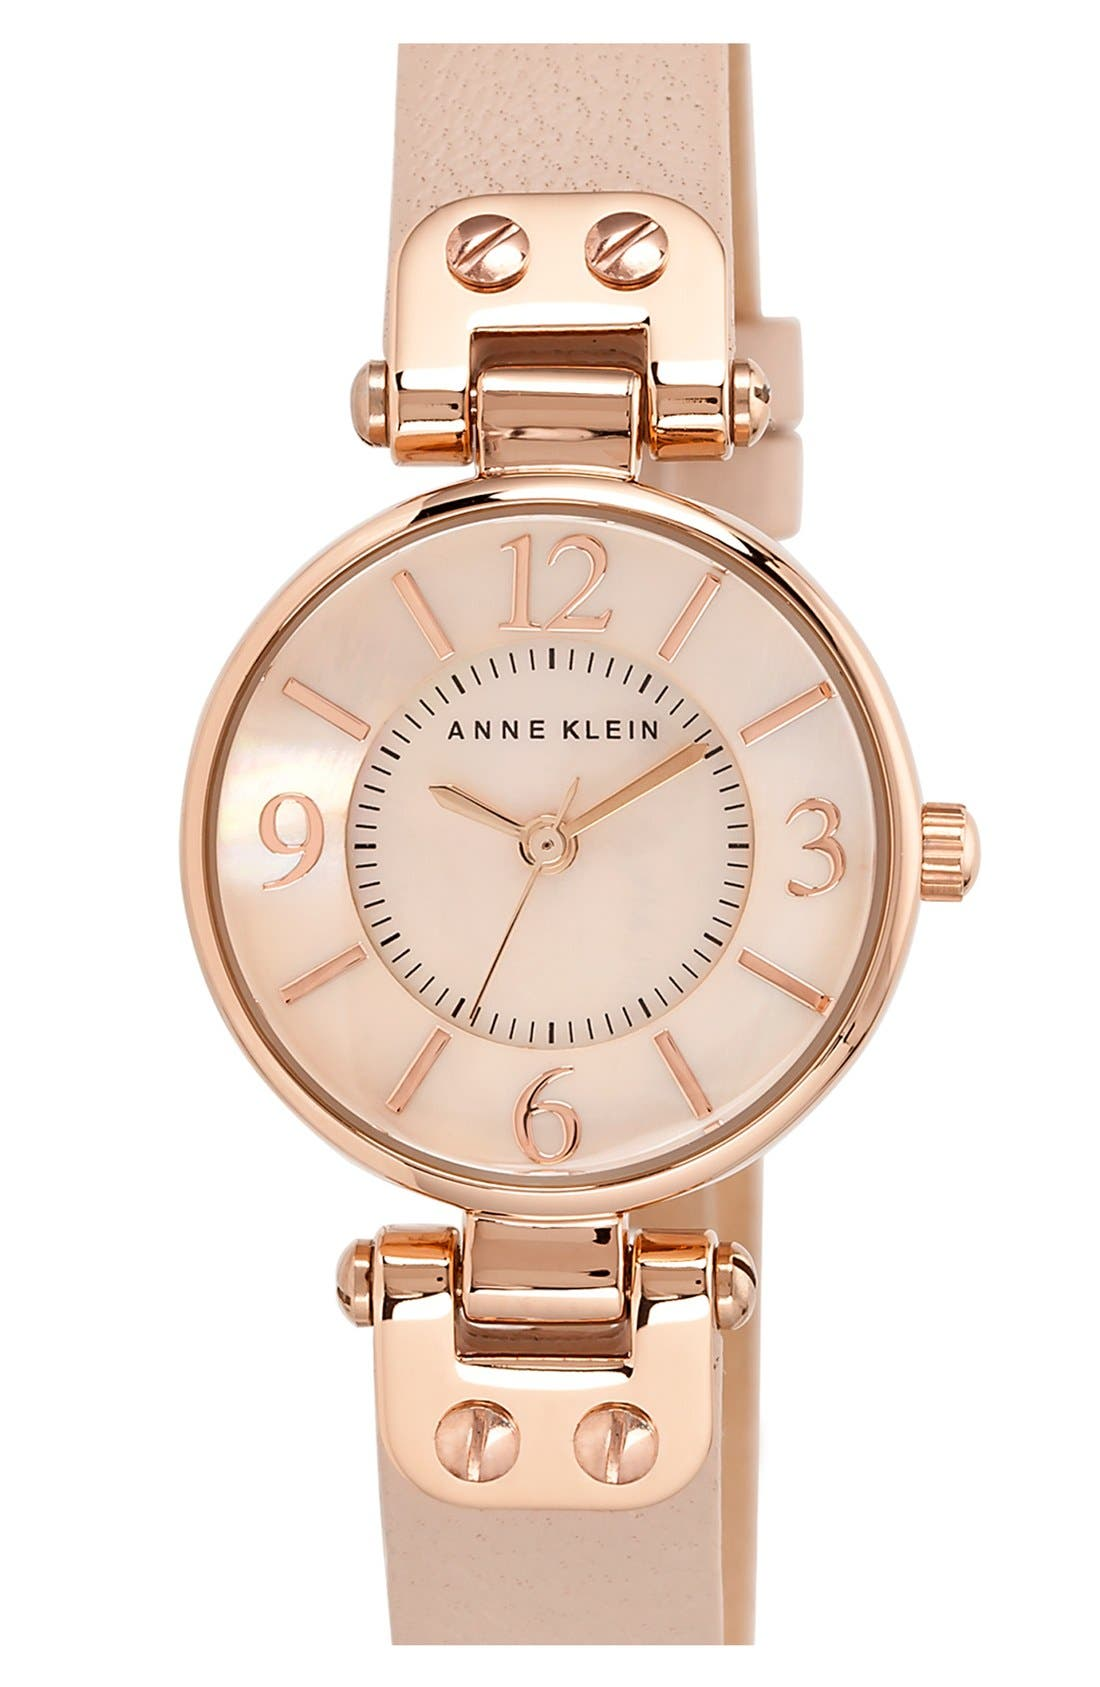 ANNE KLEIN Hinge Case Watch, 32mm